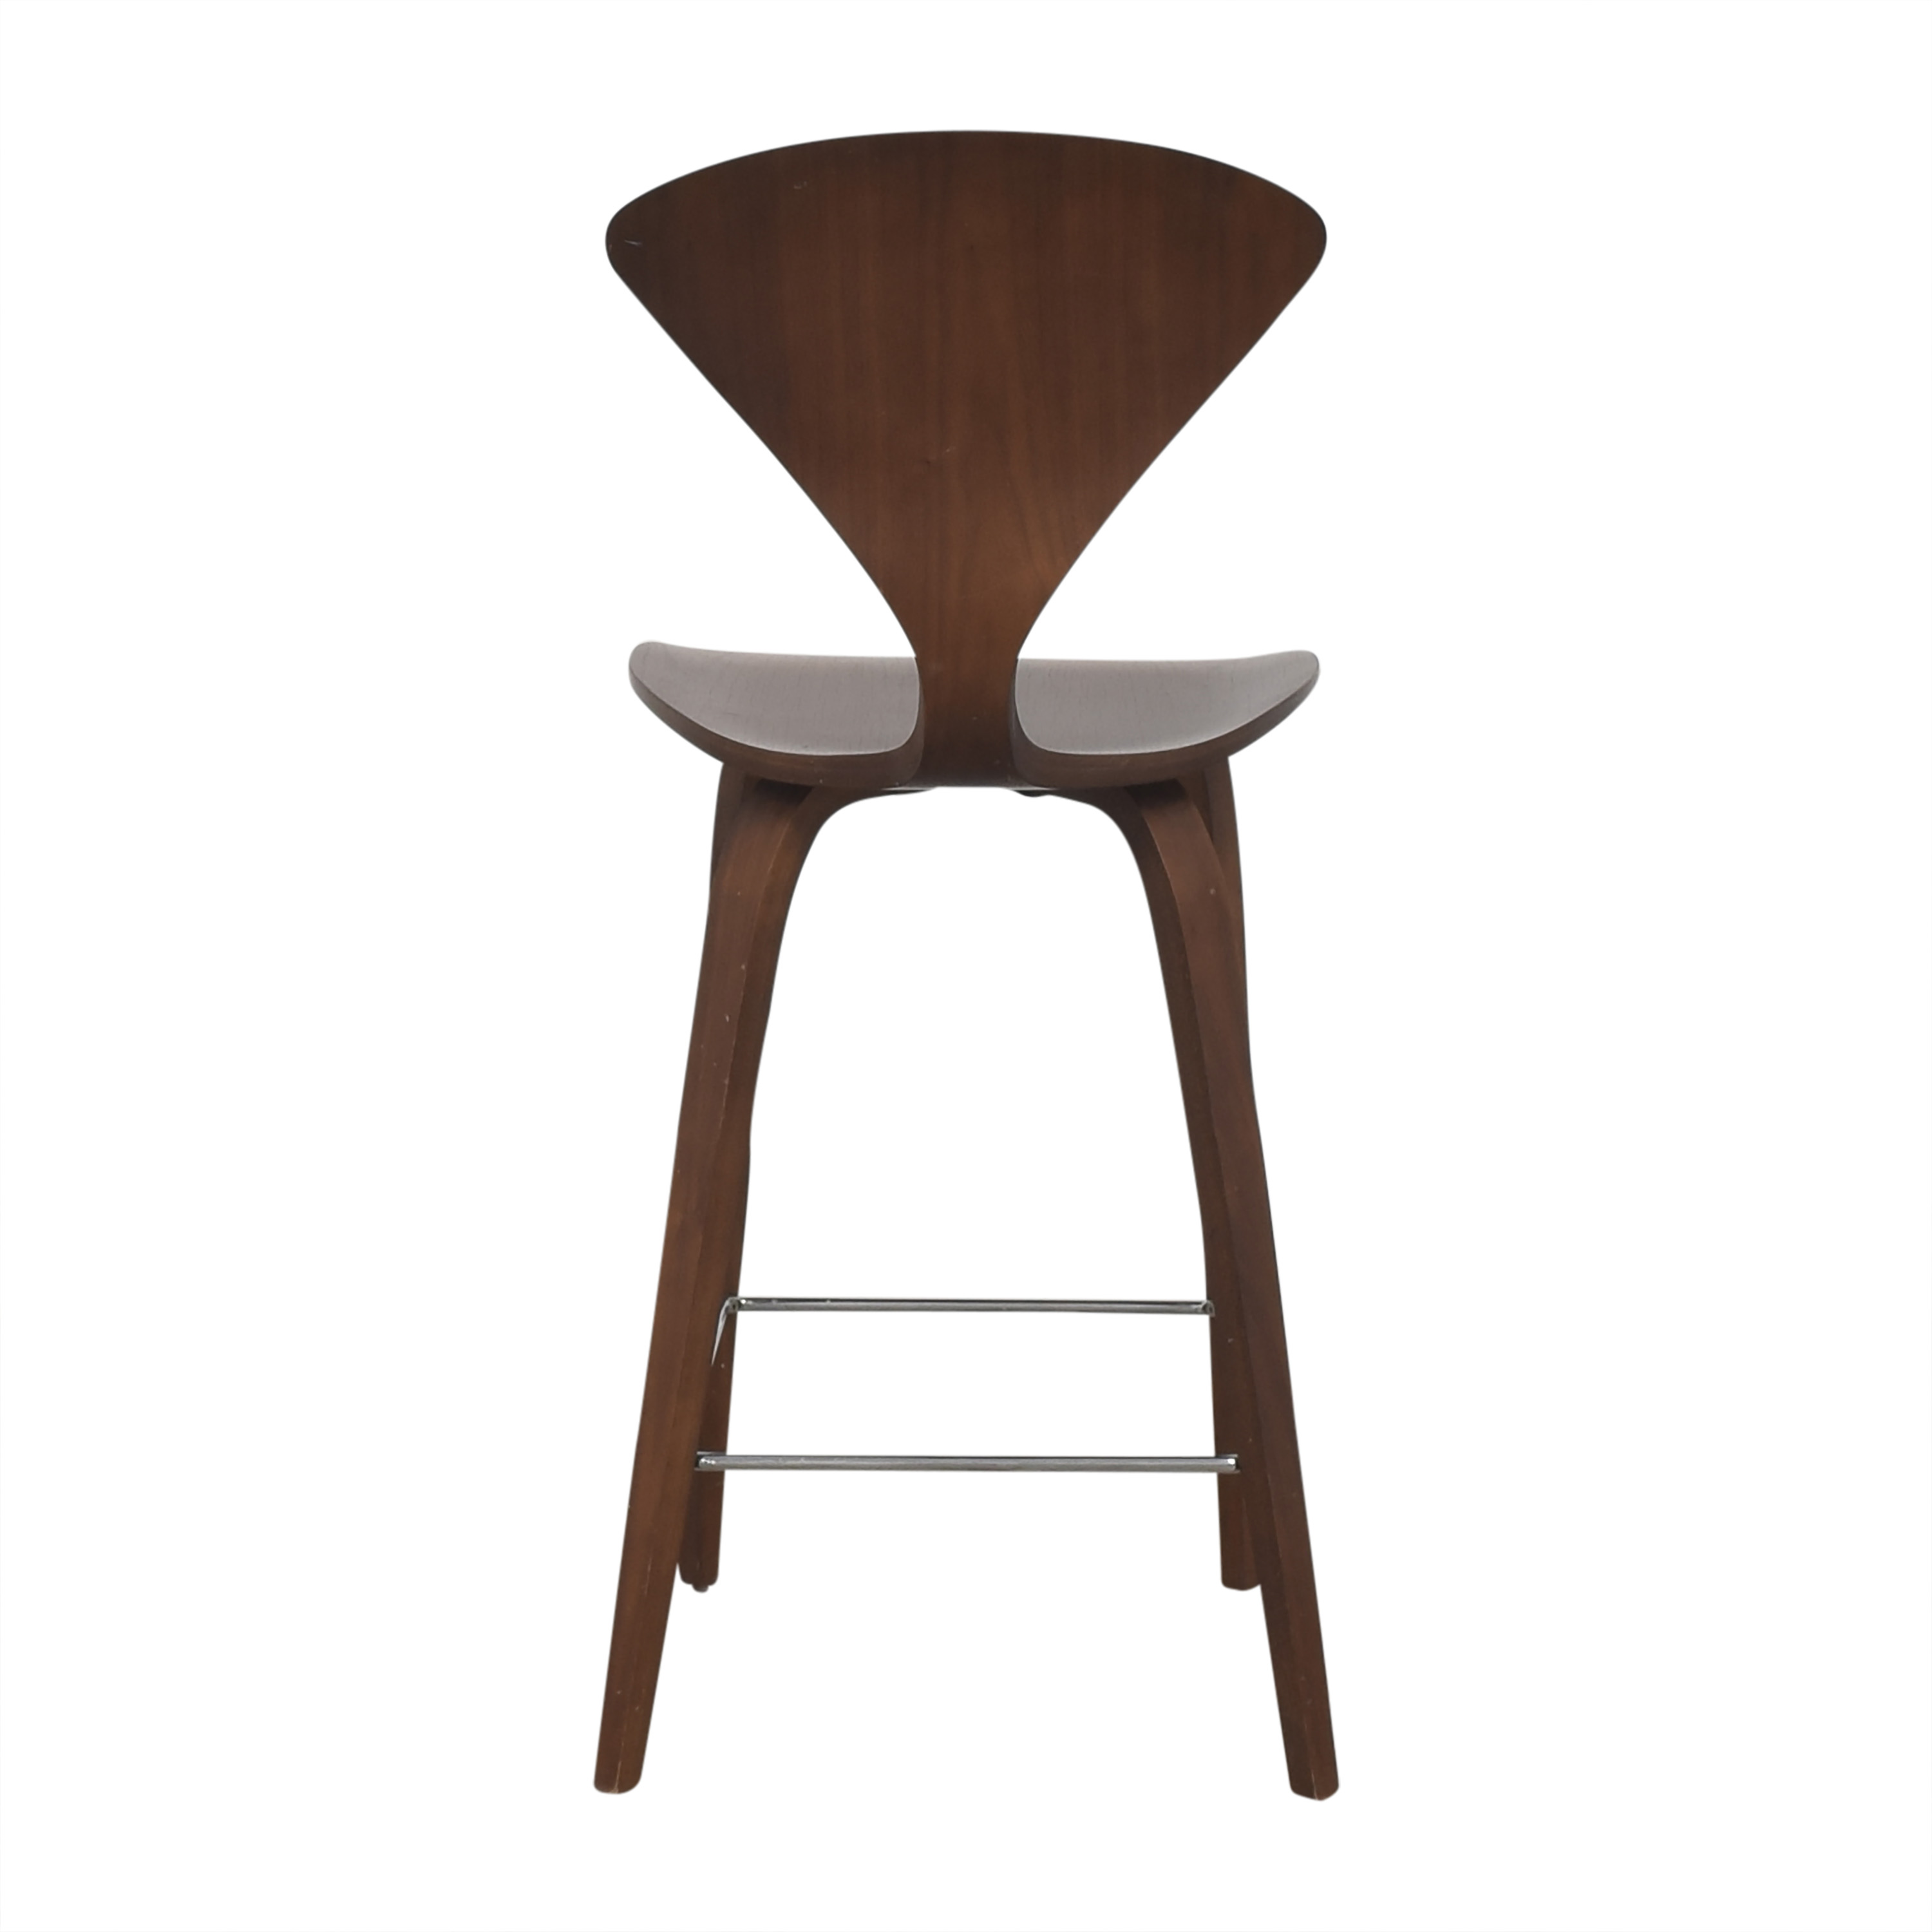 buy Design Within Reach Cherner Stool Design Within Reach Chairs